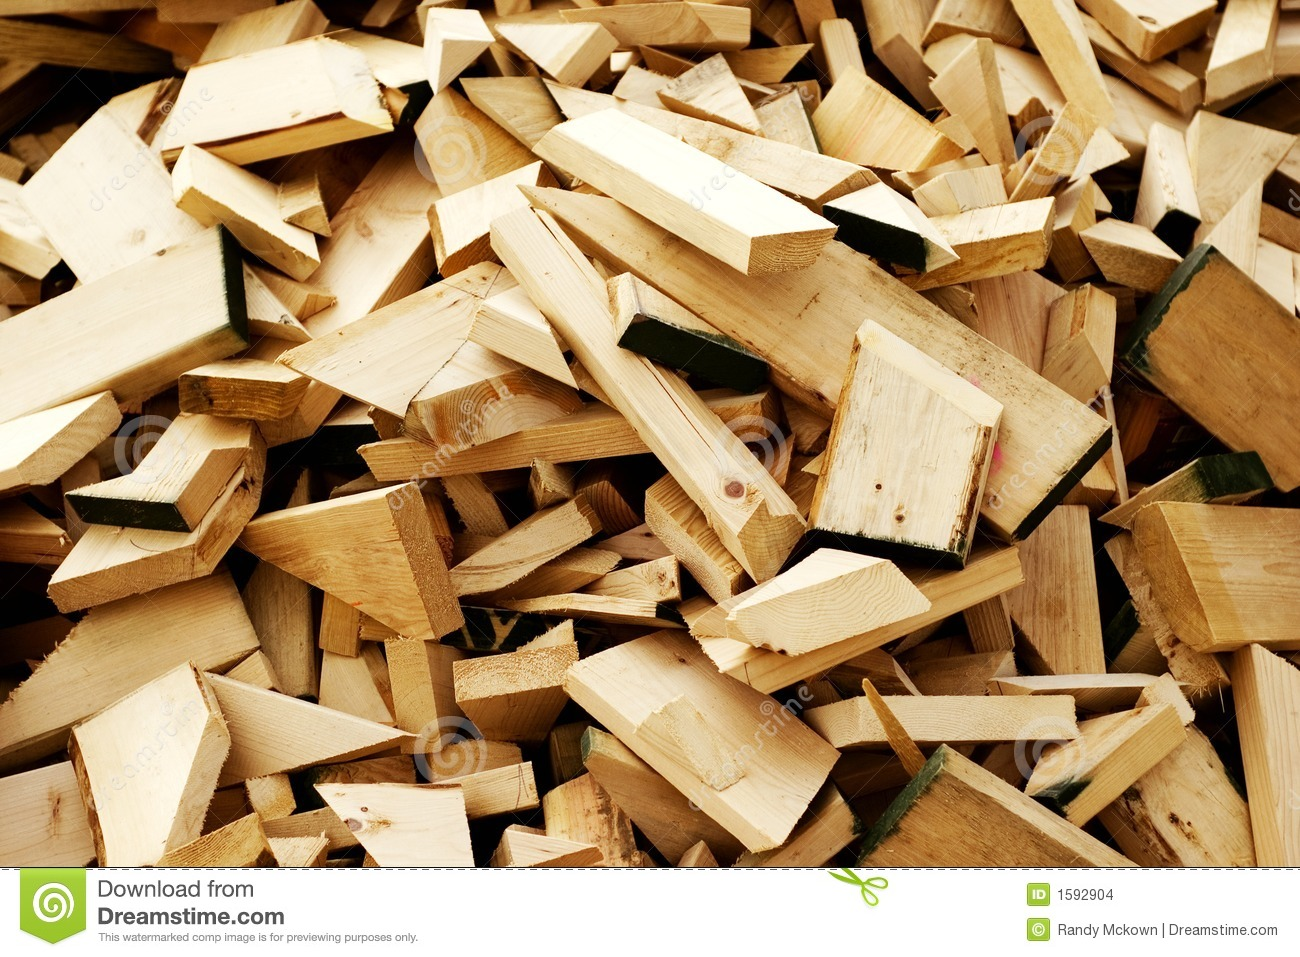 how to recycle construction wood scrap in santa clara and san mateo